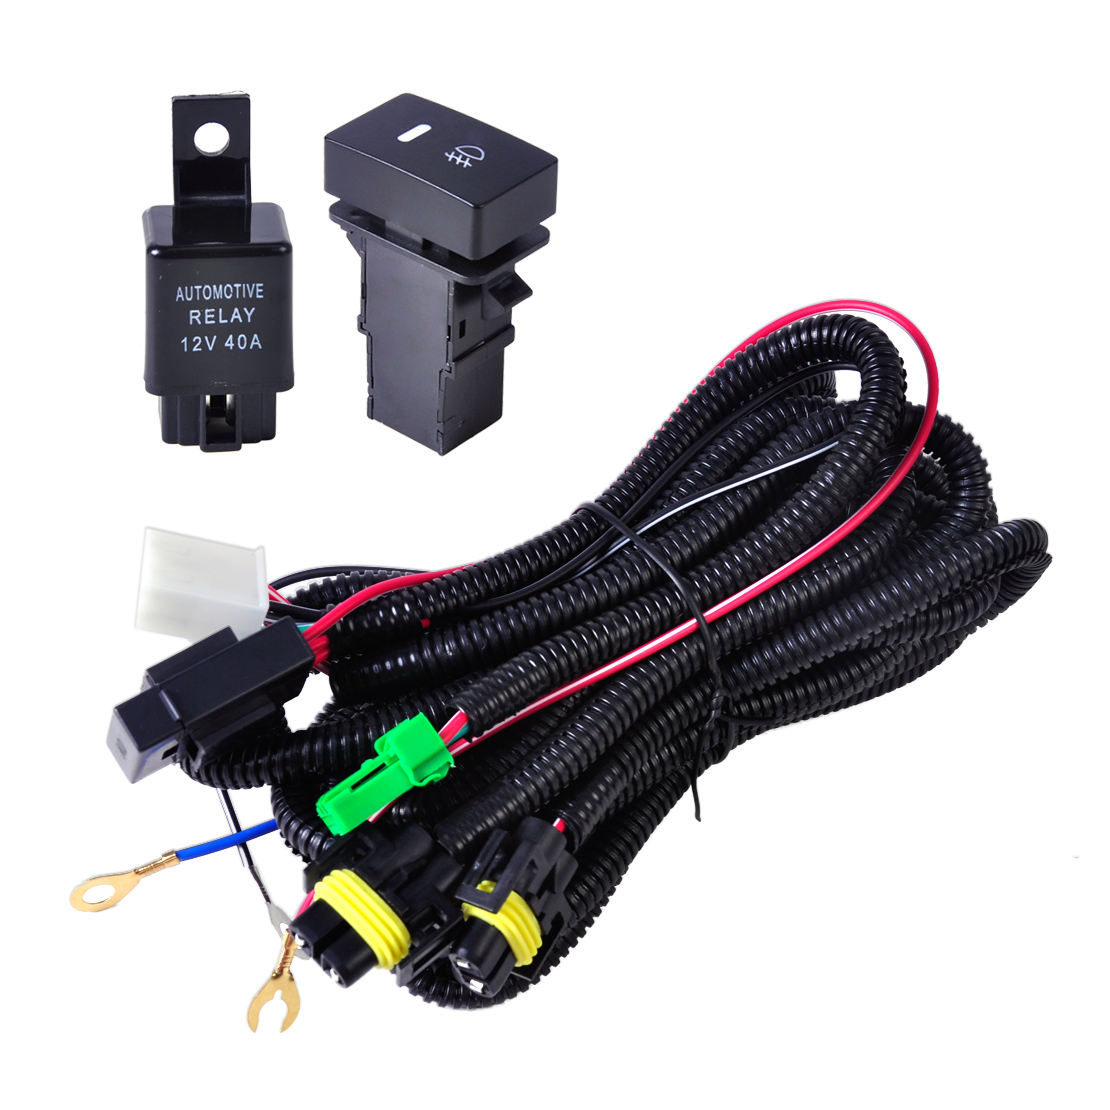 2 Universal Motorcycle Wire Harness on universal motorcycle throttle, universal motorcycle backrest, universal motorcycle regulator,